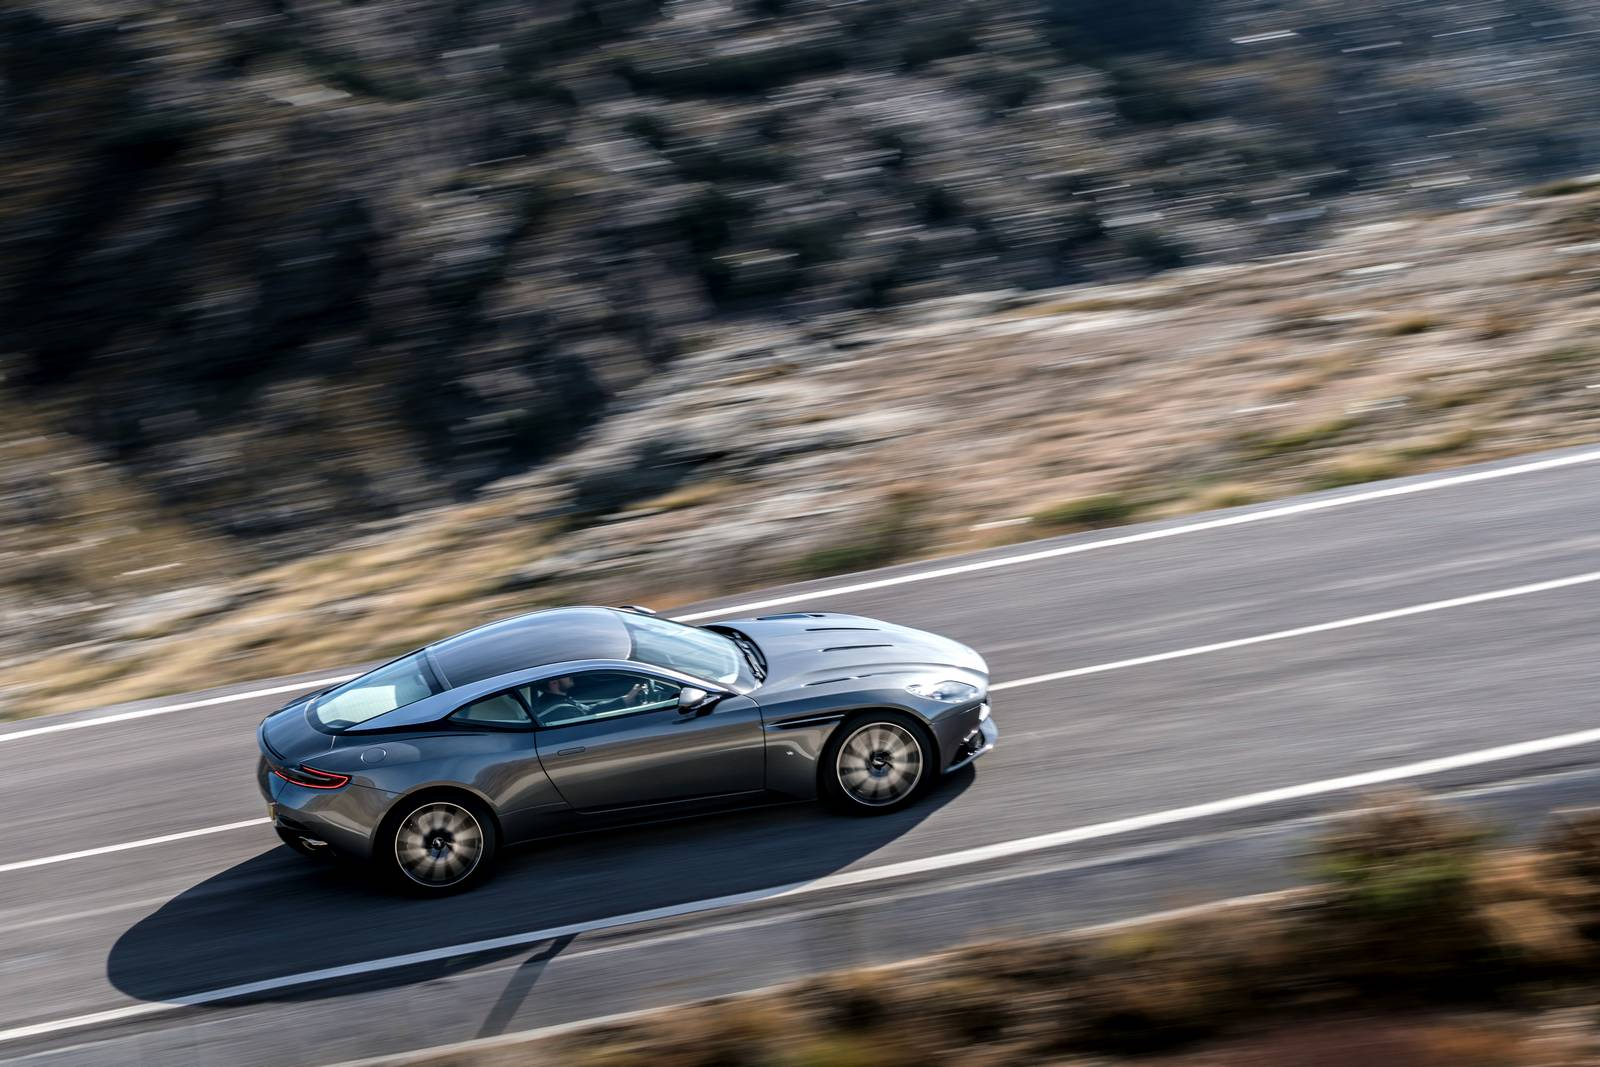 Aston Martin DB11 OFFICIALLY revealed - 600bhp of Aston's finest for £154900